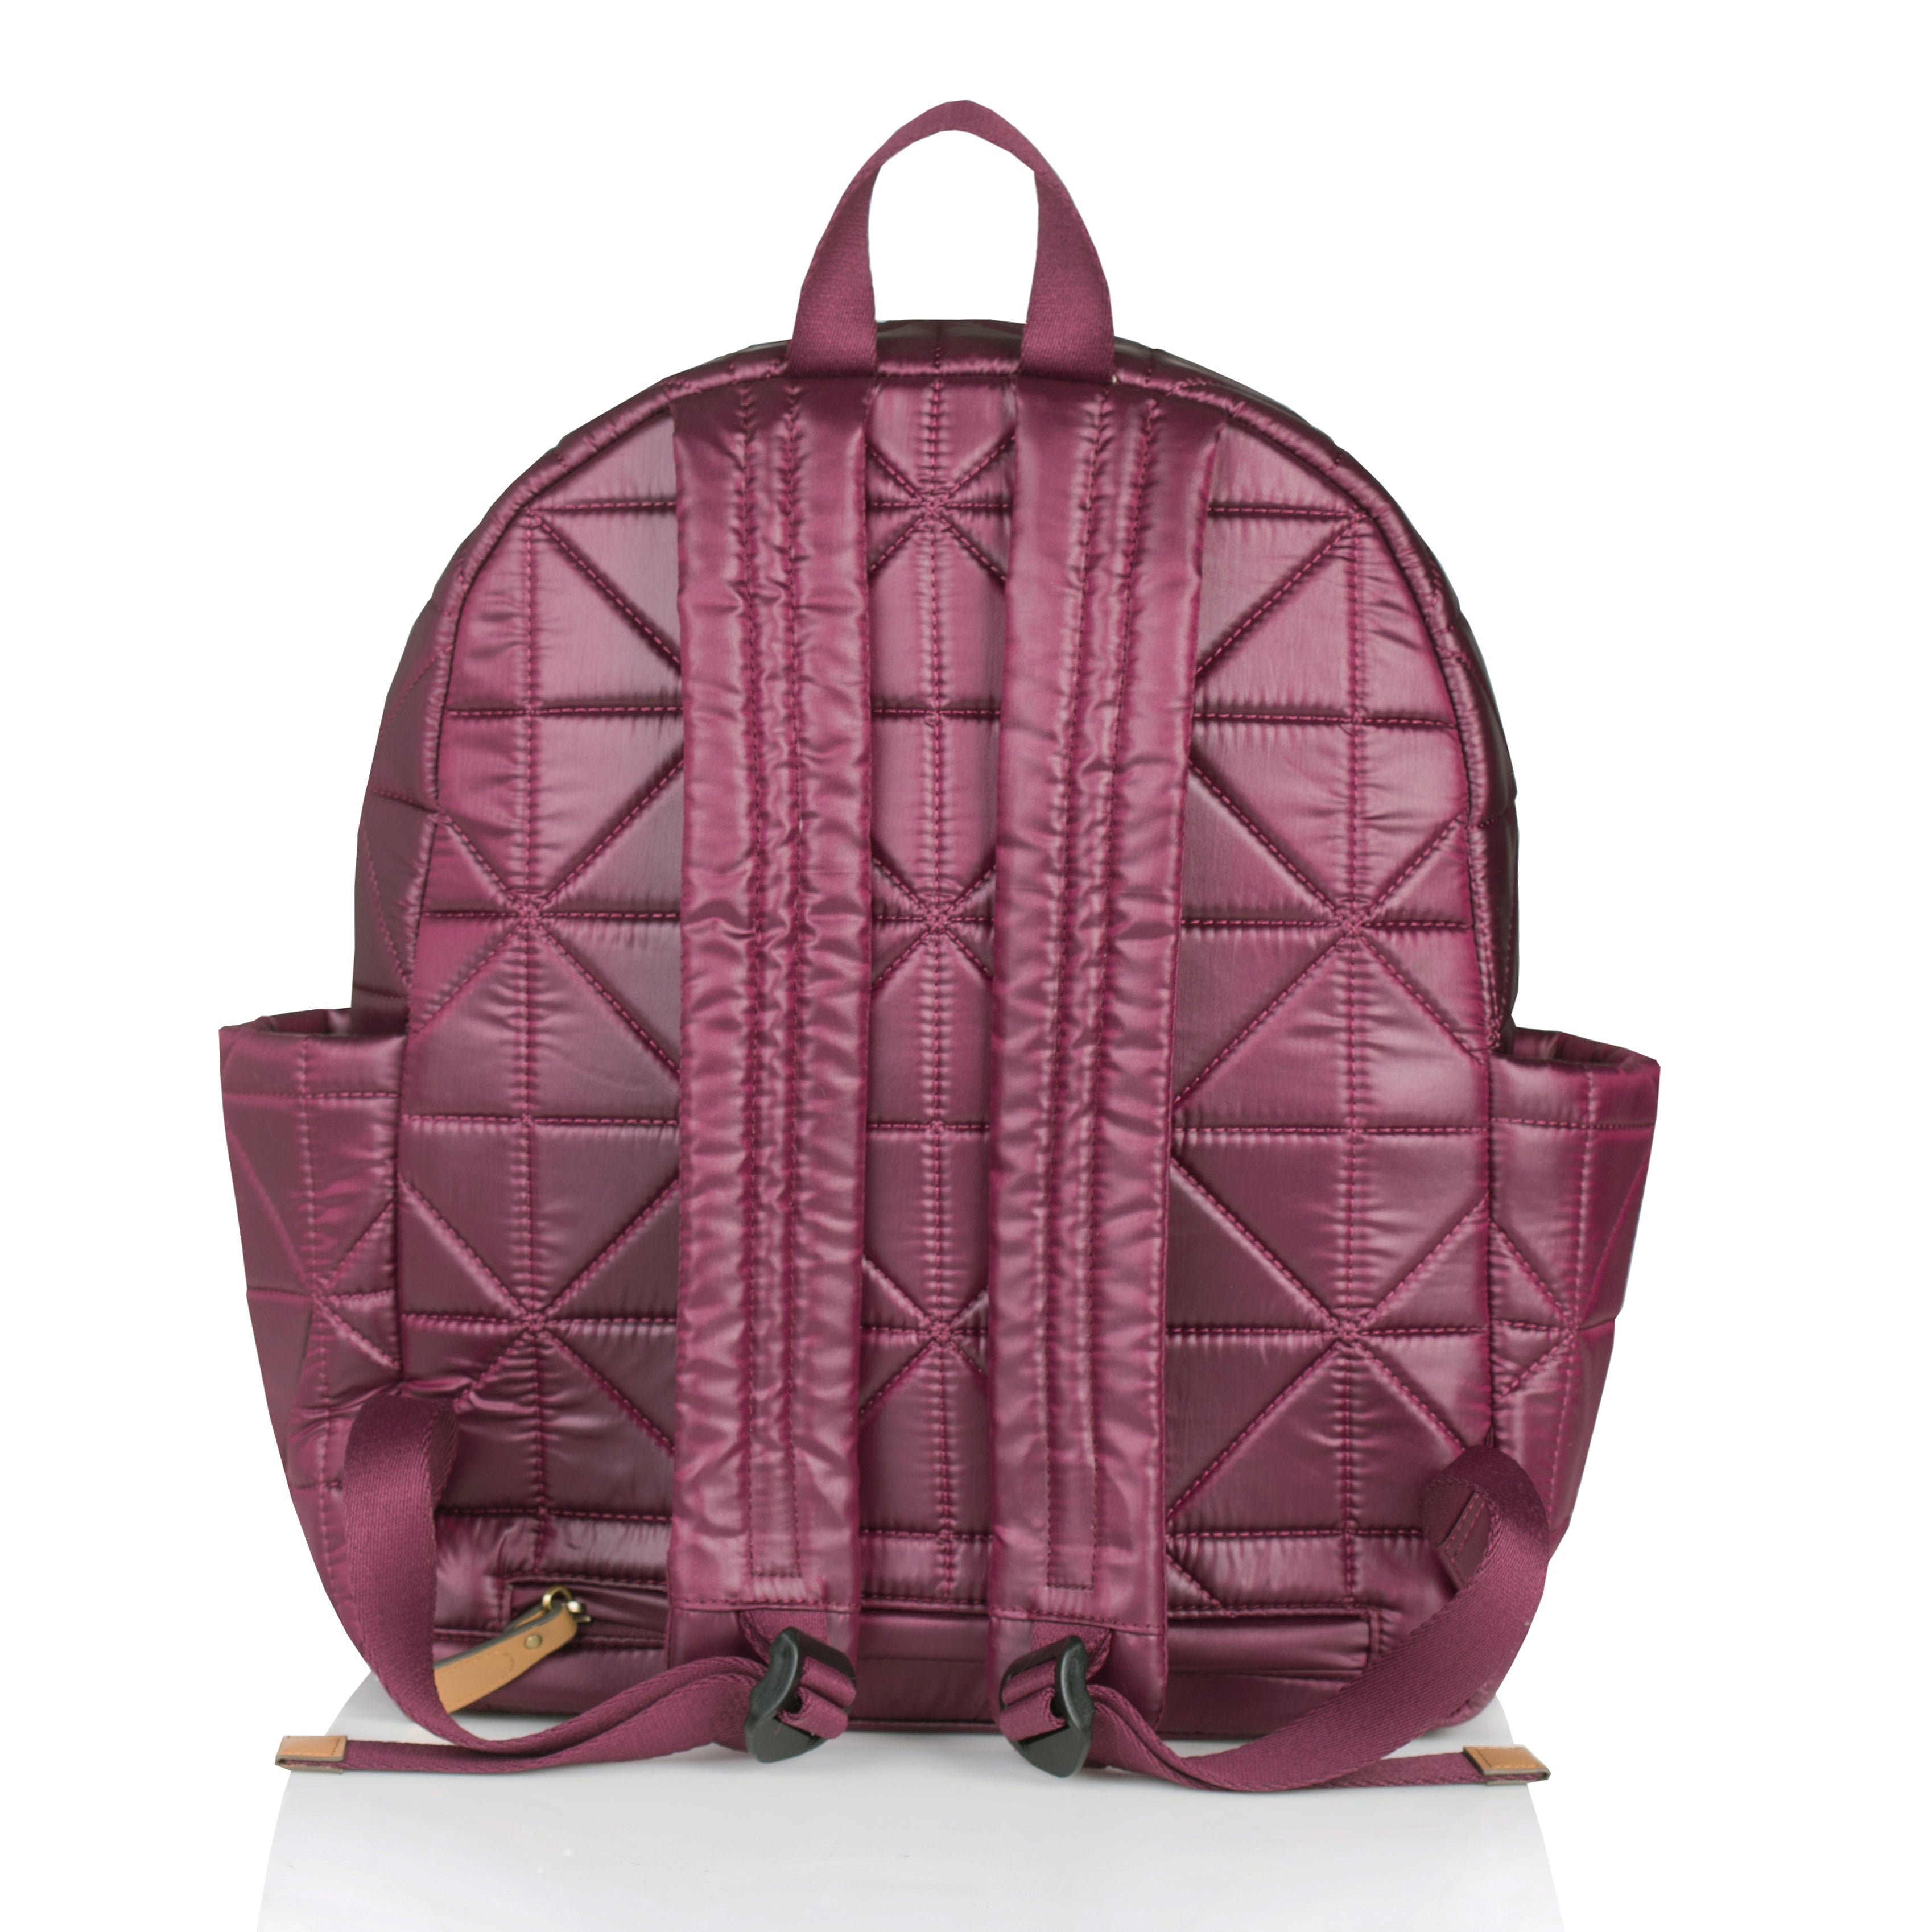 Back view of wine companion backpack